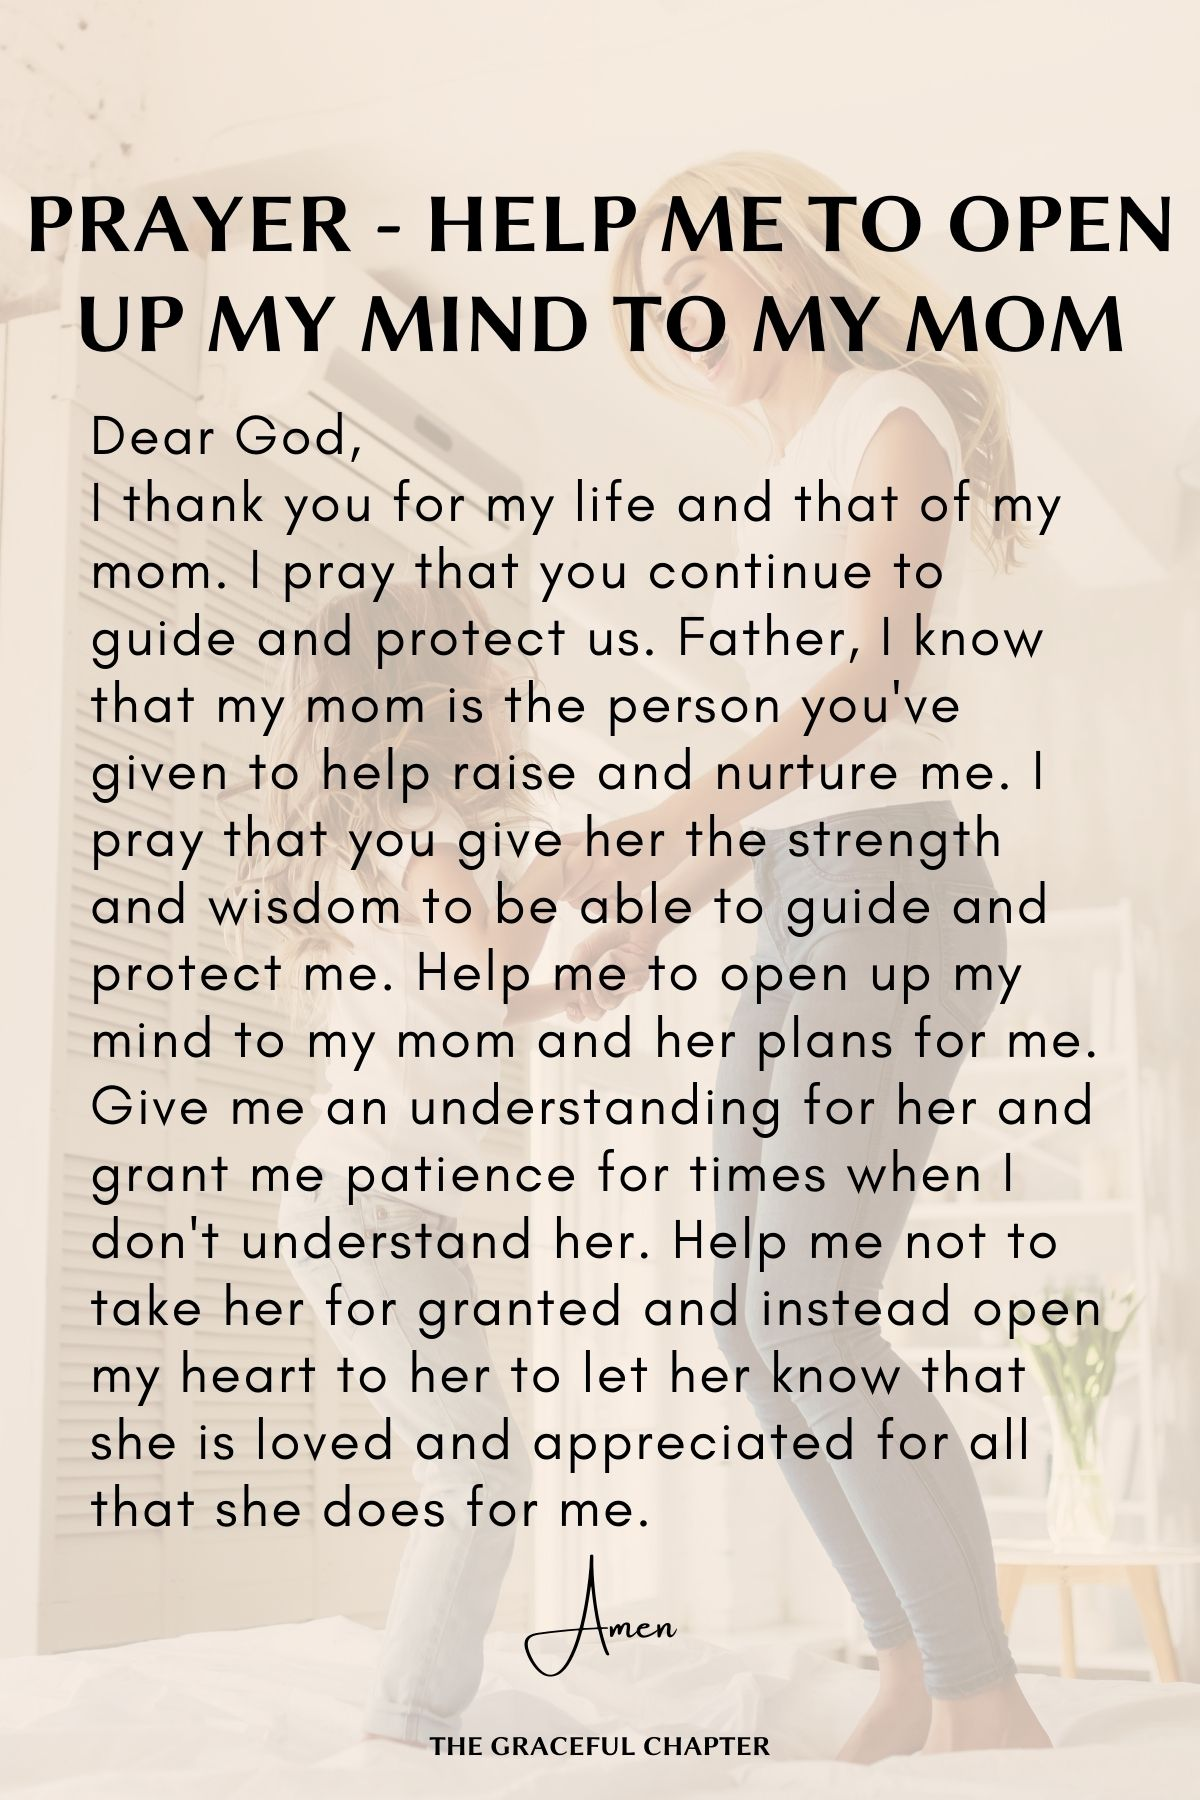 Help me to open up my mind to my mom